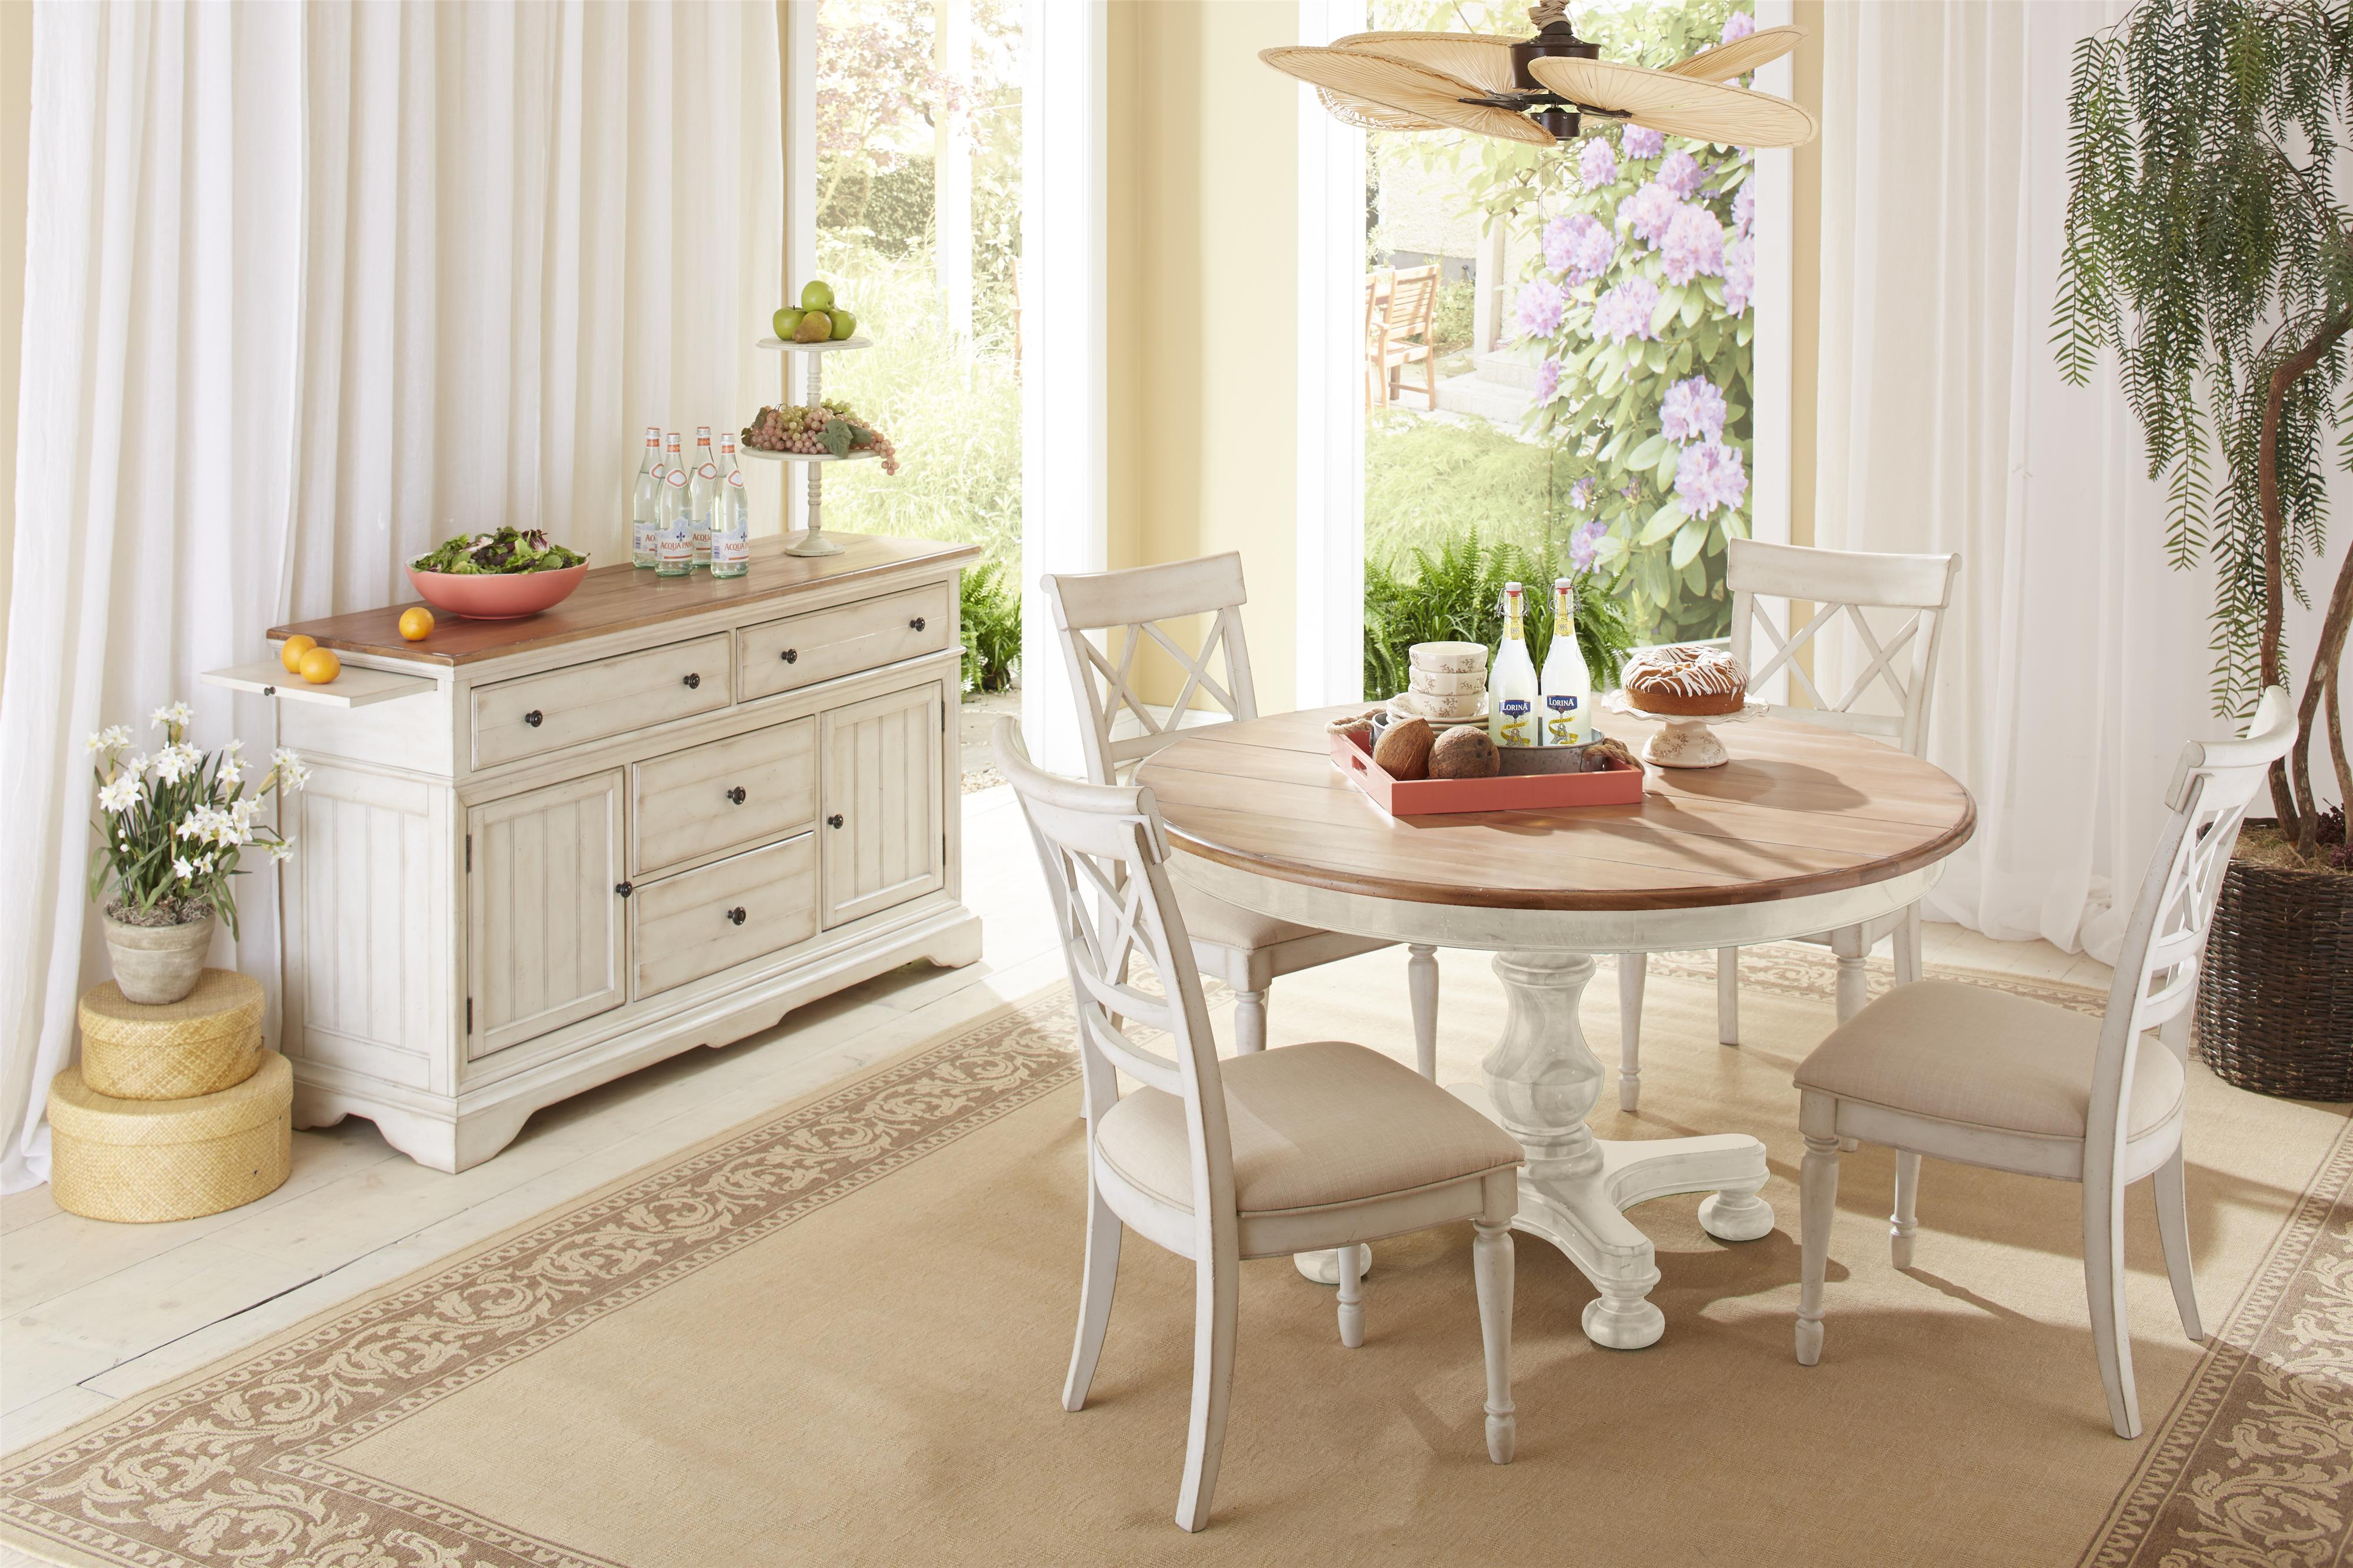 Cresent Fine Furniture Cottage Casual Dining Room Group - Item Number: 201 Dining Room Group 4